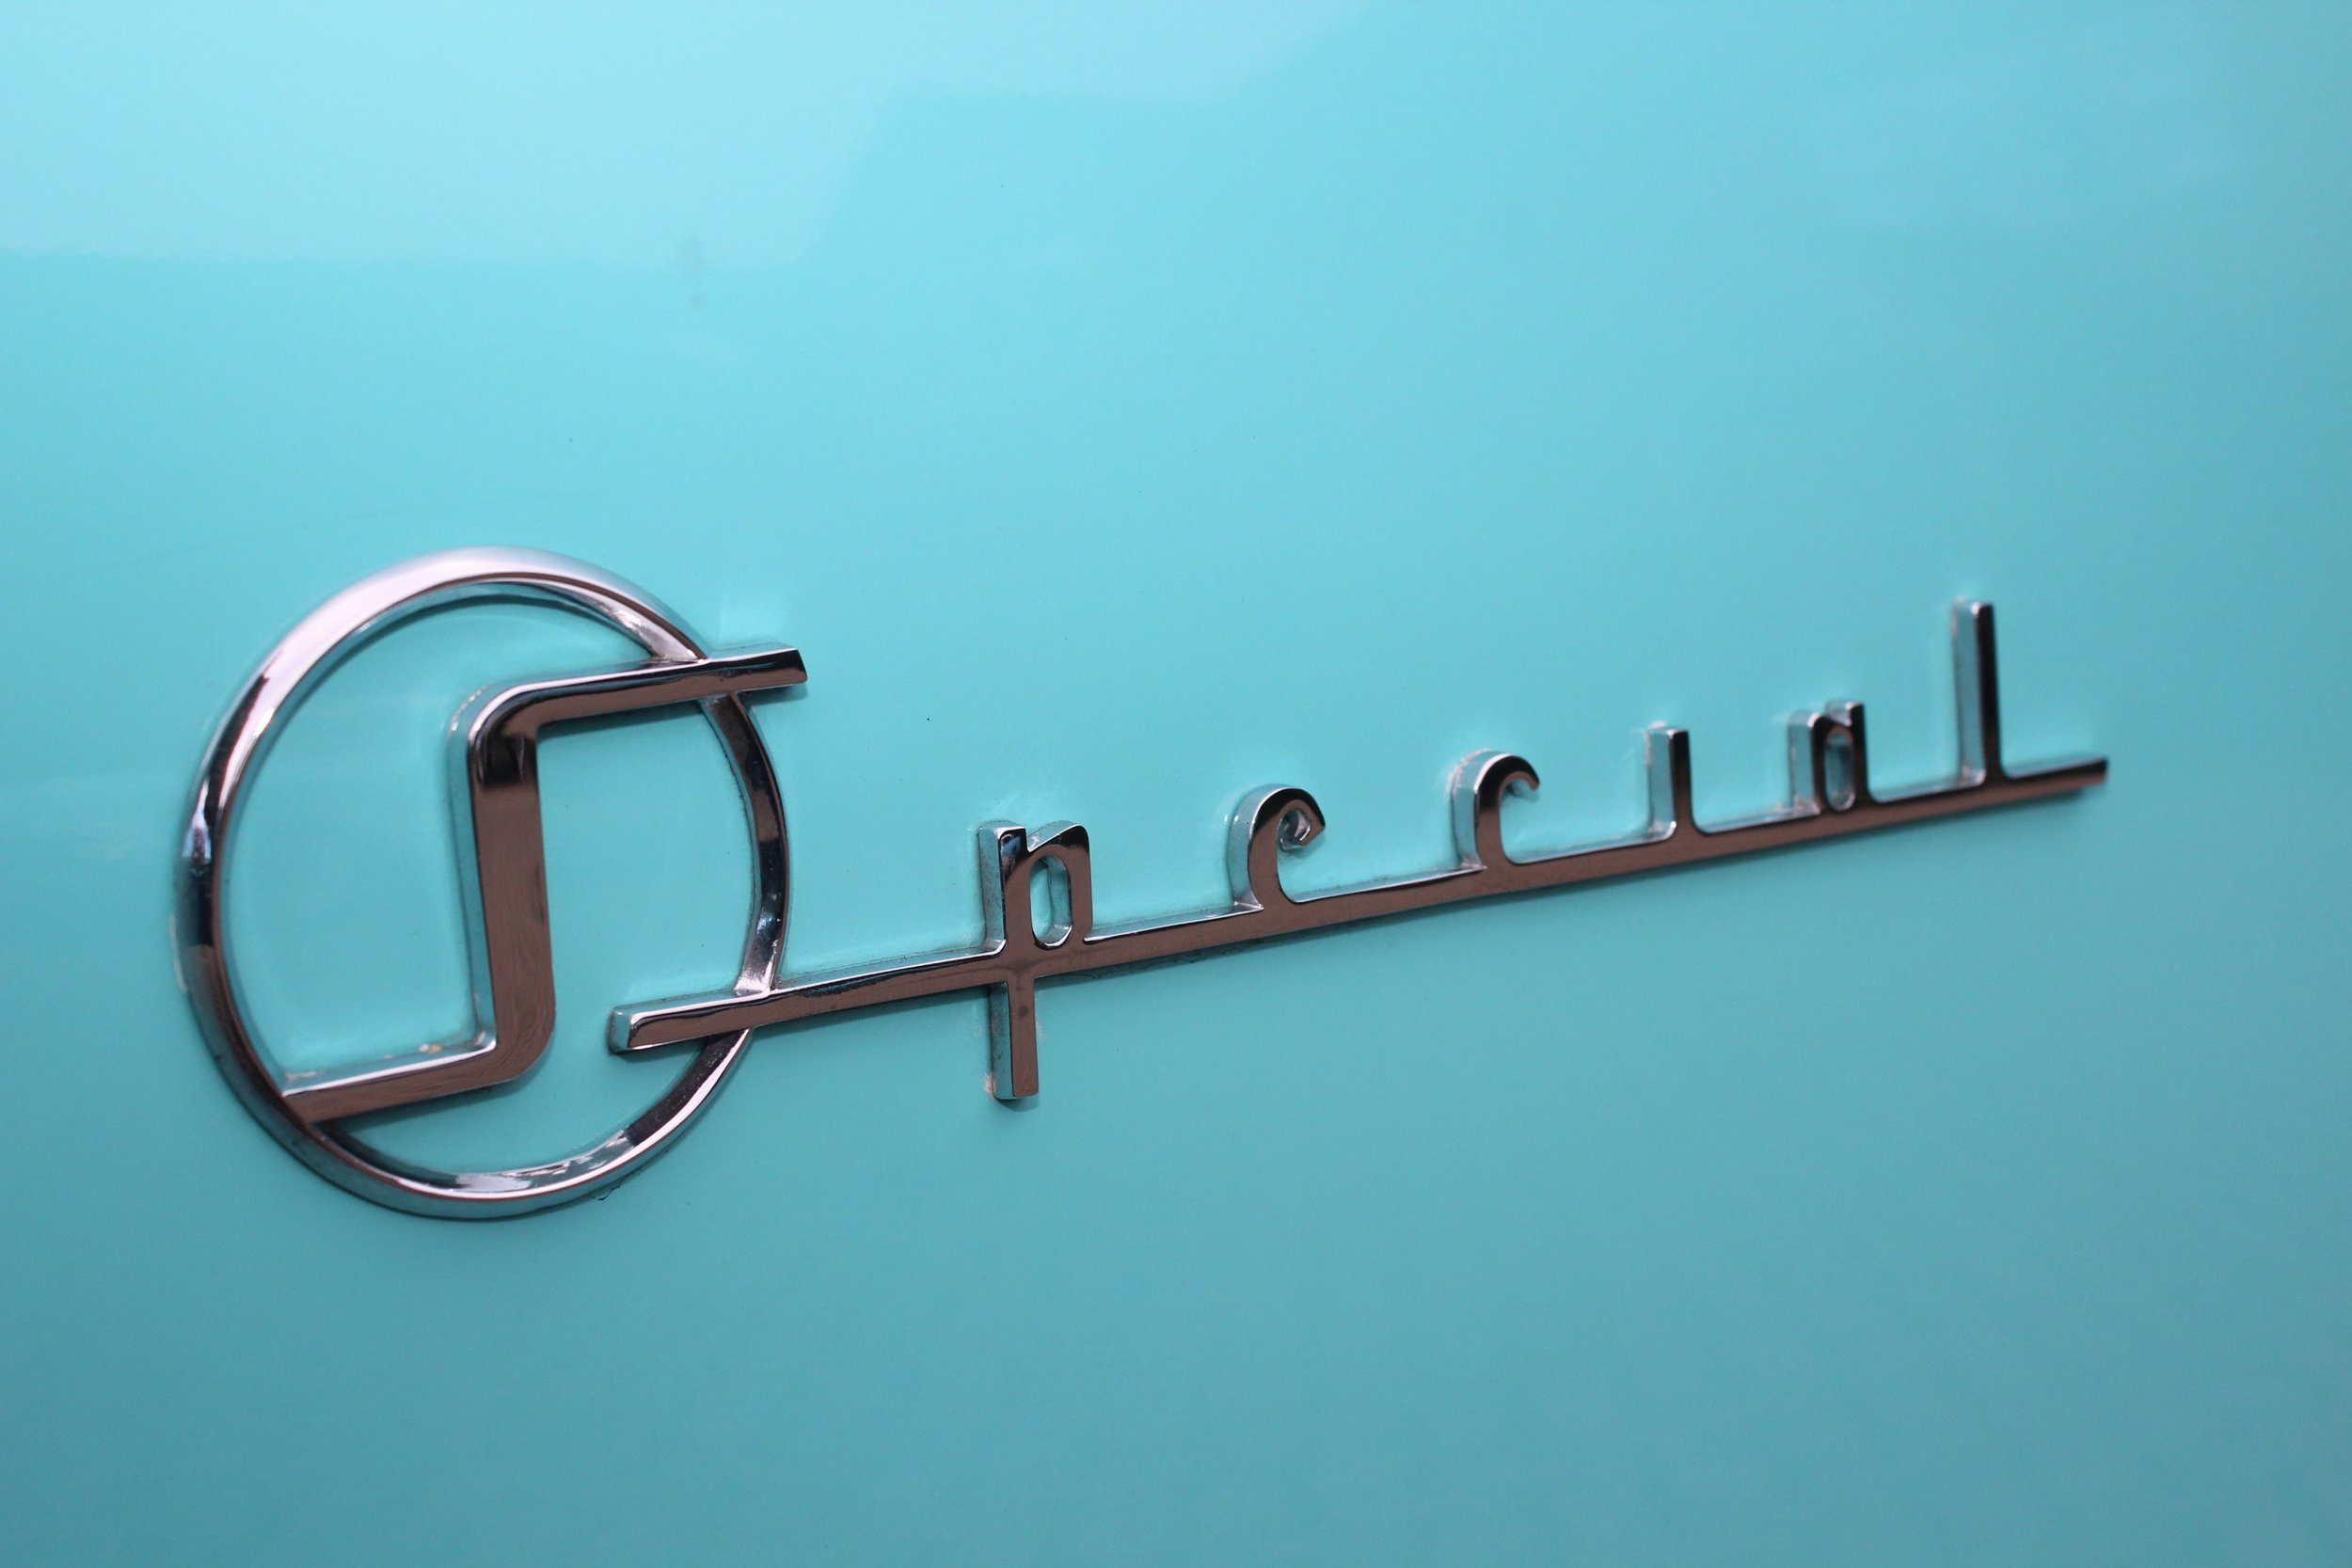 Classic-Car-Hire-Buick-Special-1955-turquoise-wedding-car.jpg